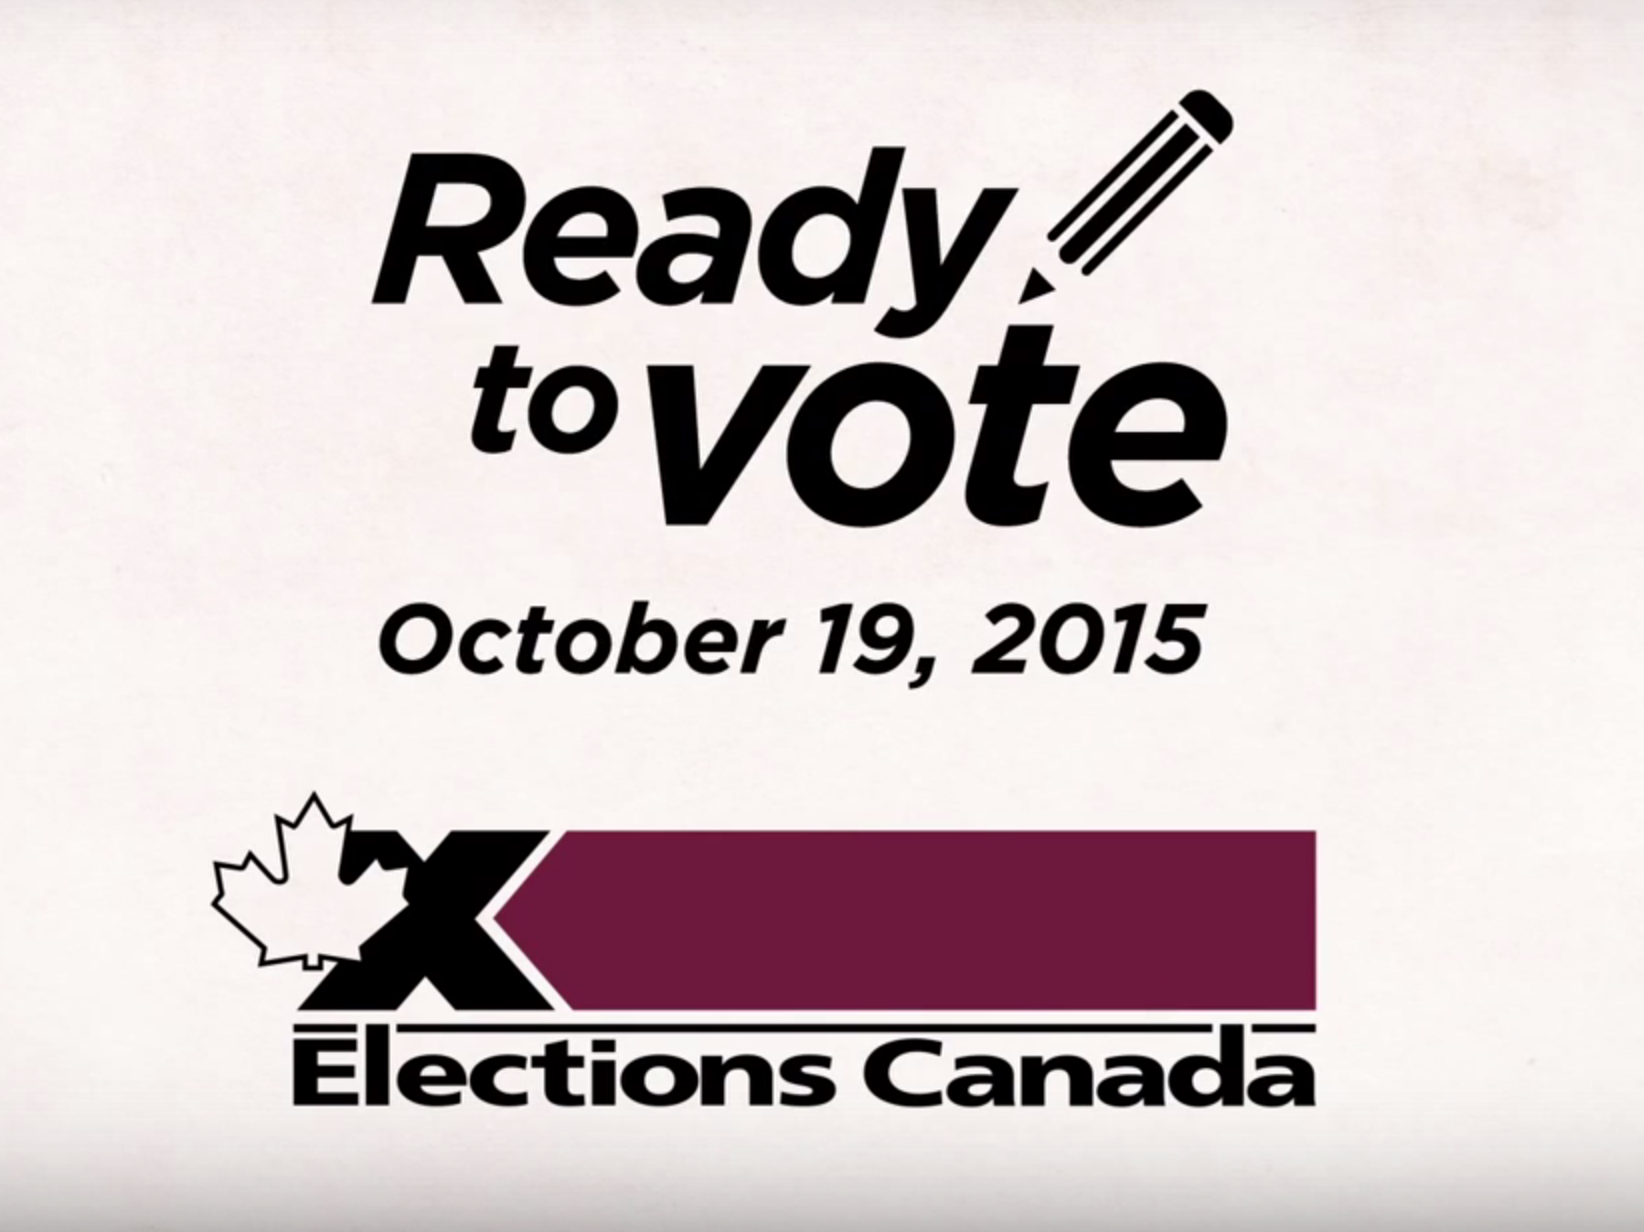 elections canada ready to vote